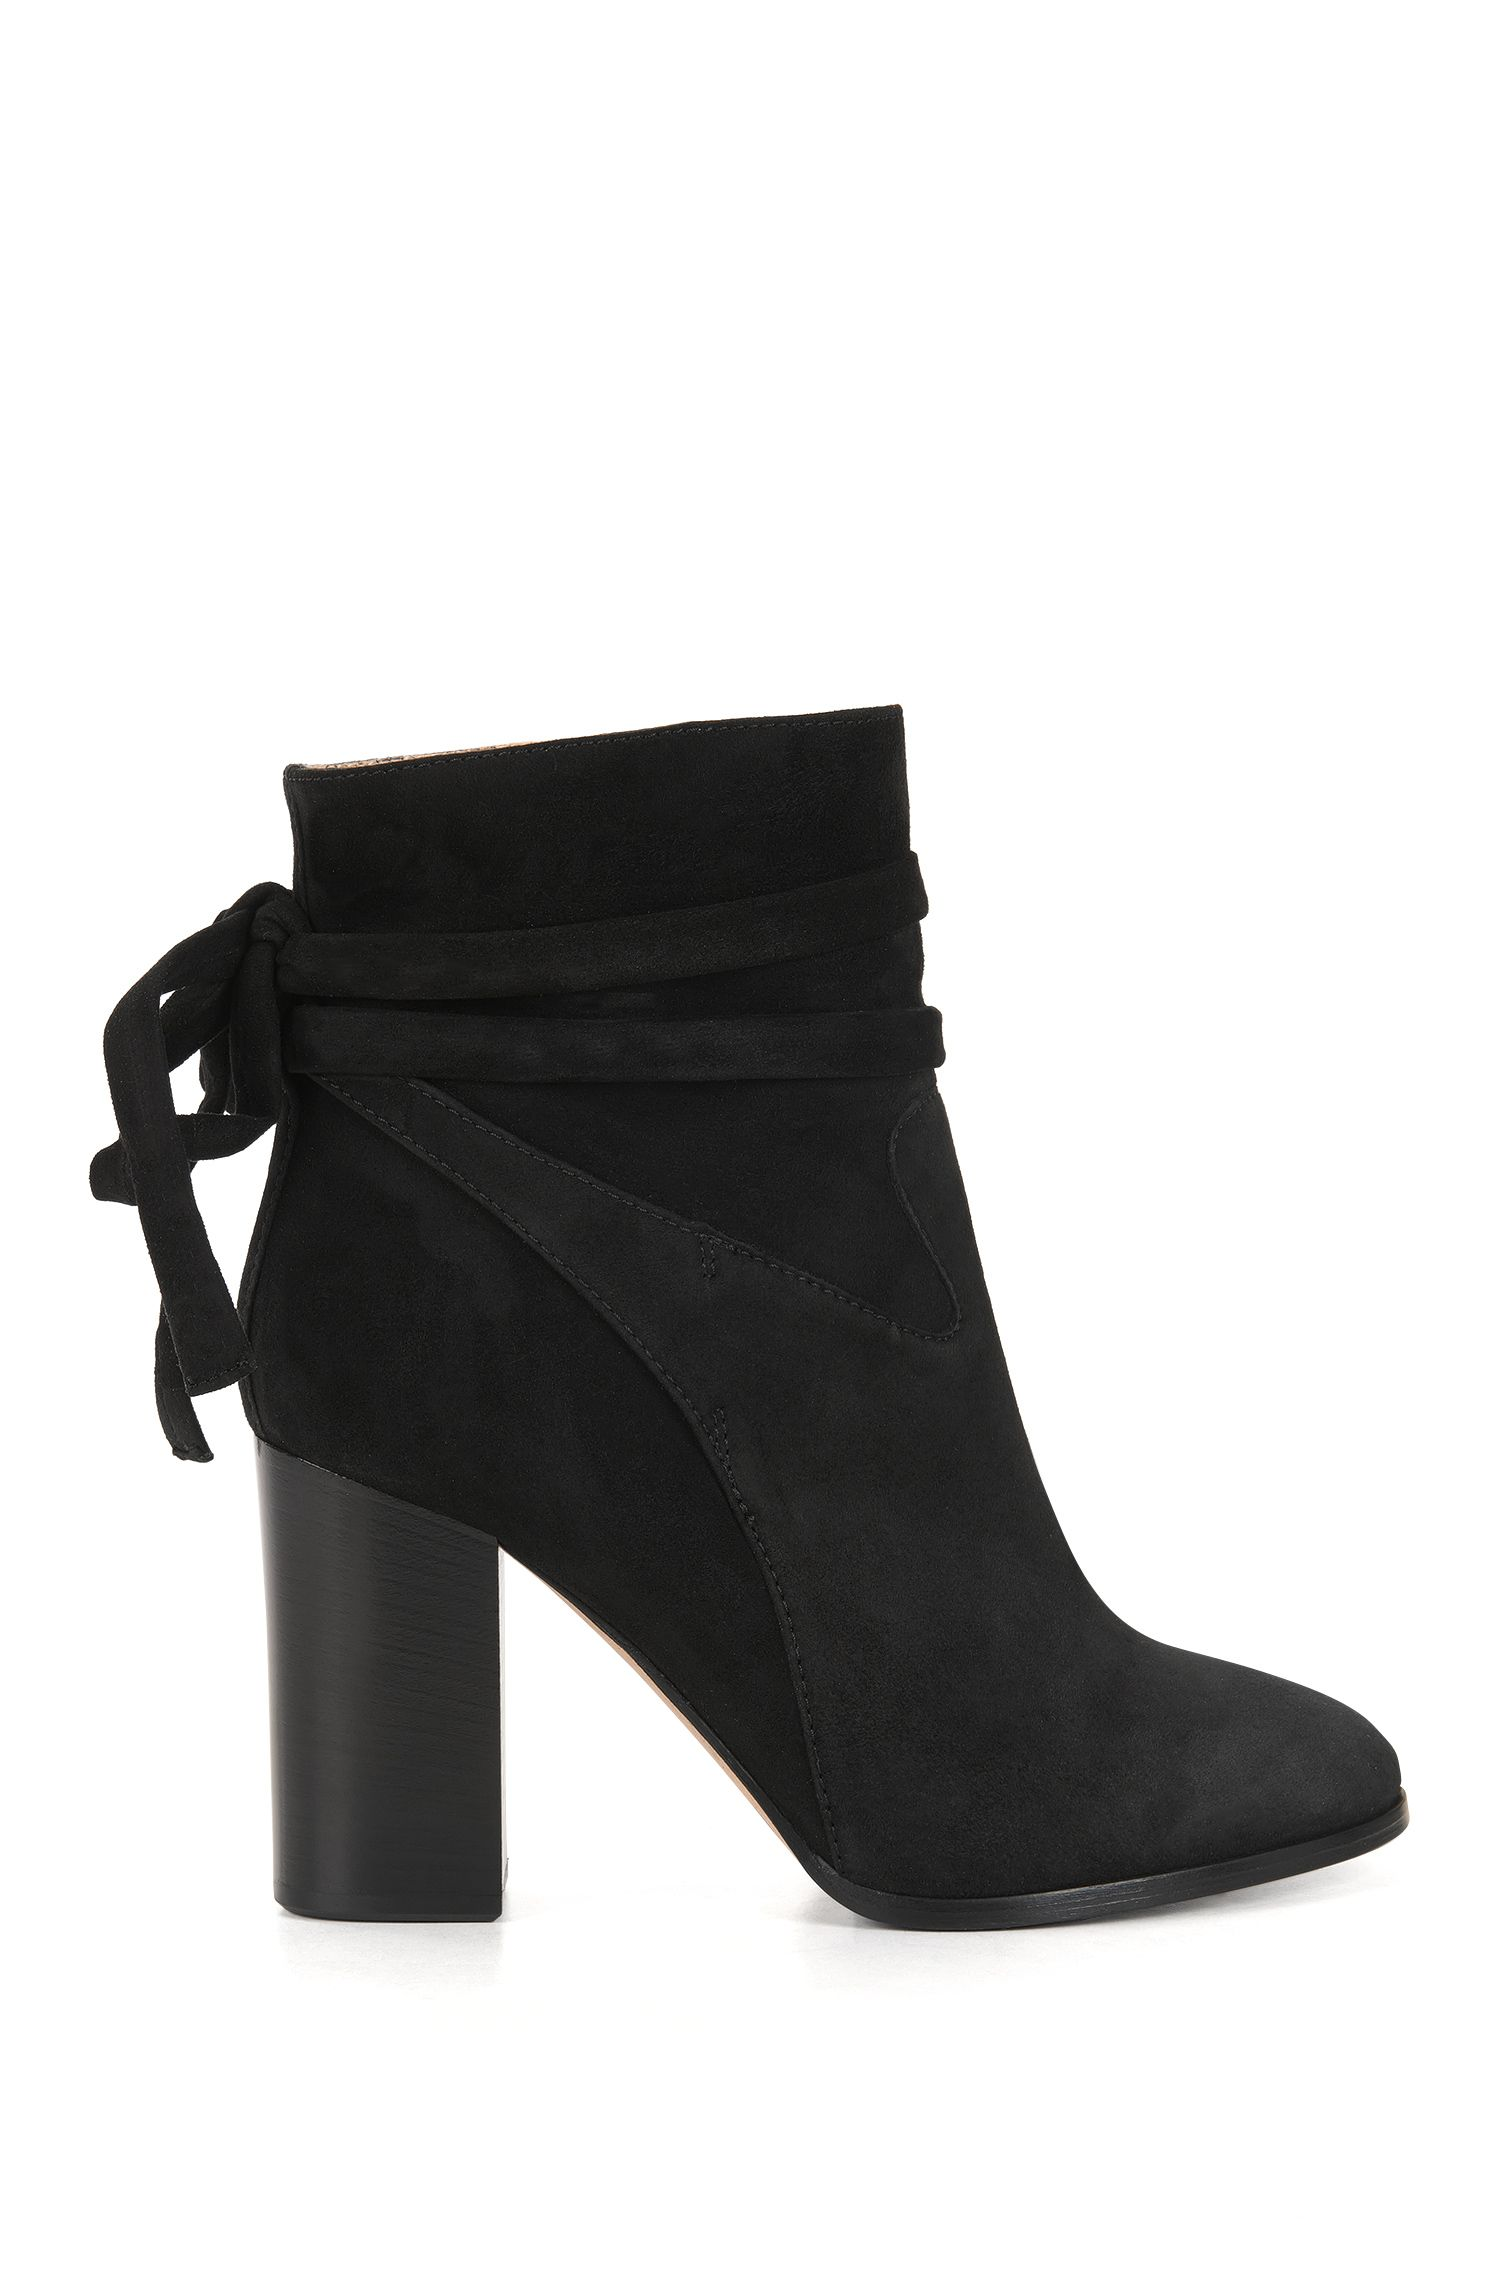 Suede ankle boots with wrap detail